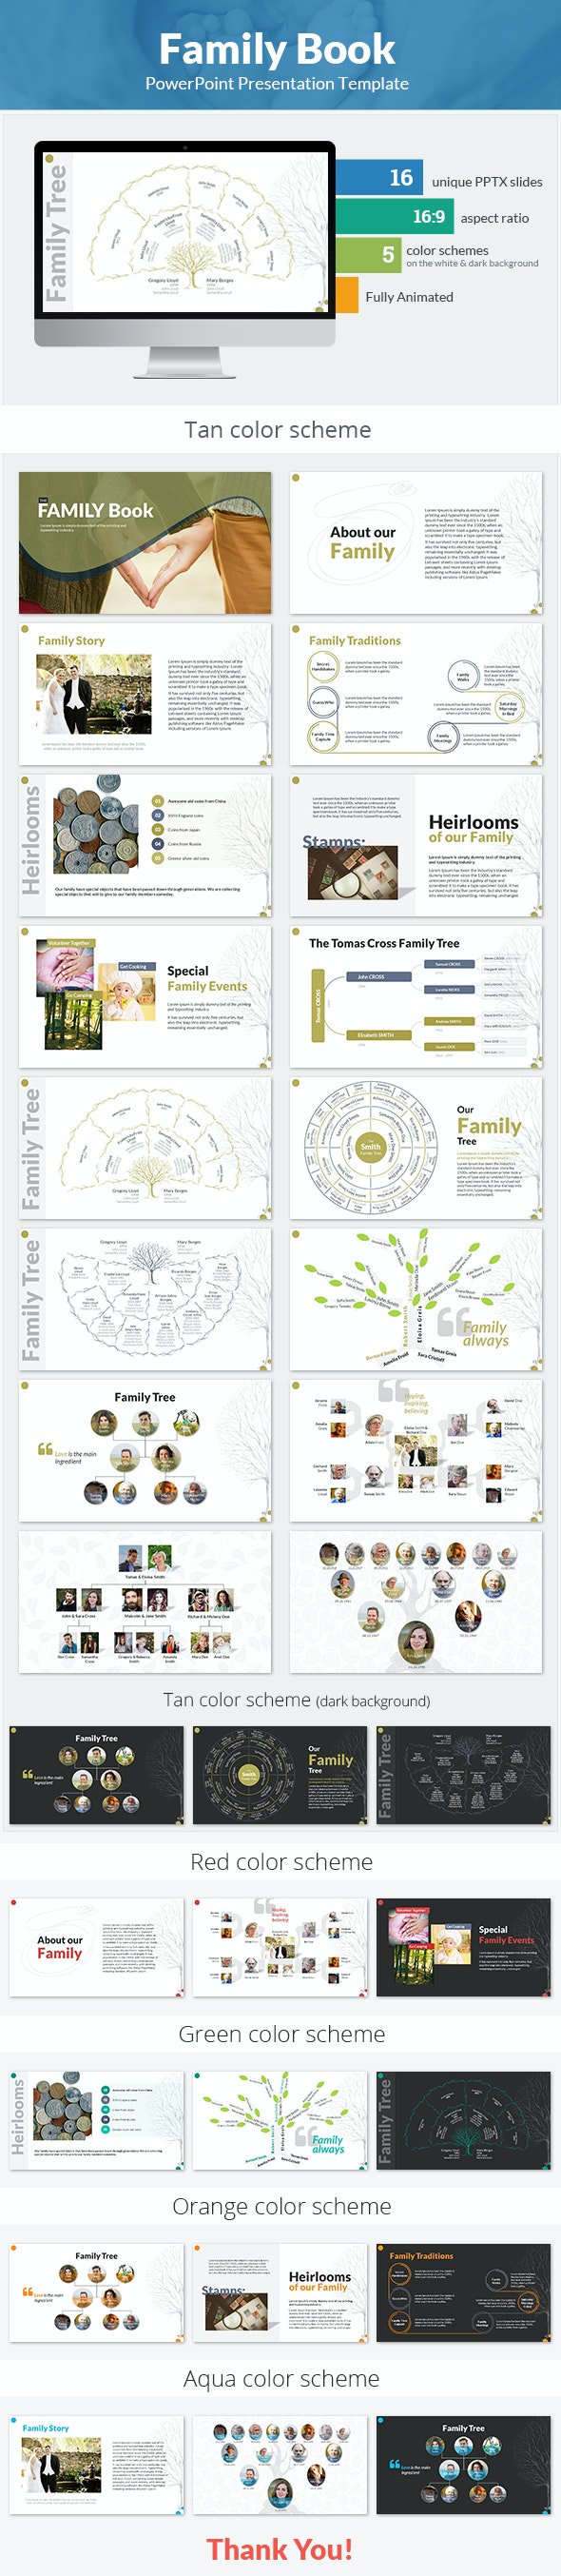 Family Book PowerPoint Presentation Template - PowerPoint Templates Presentation Templates